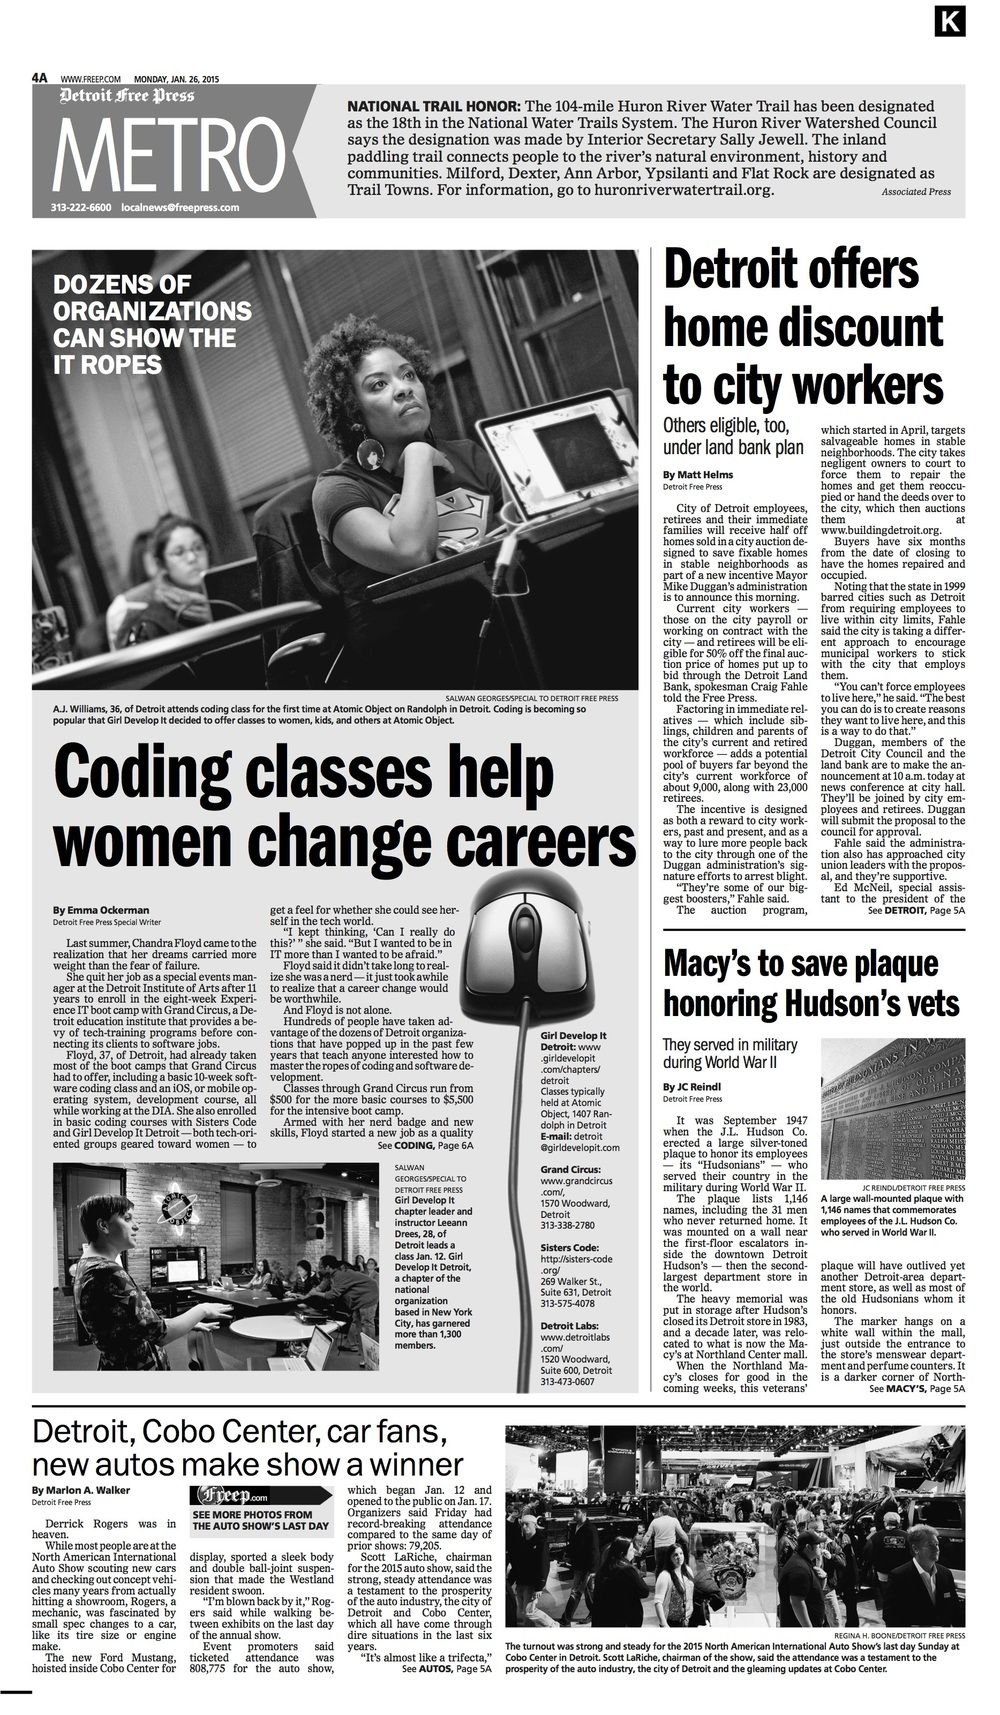 Coding classes help women change career